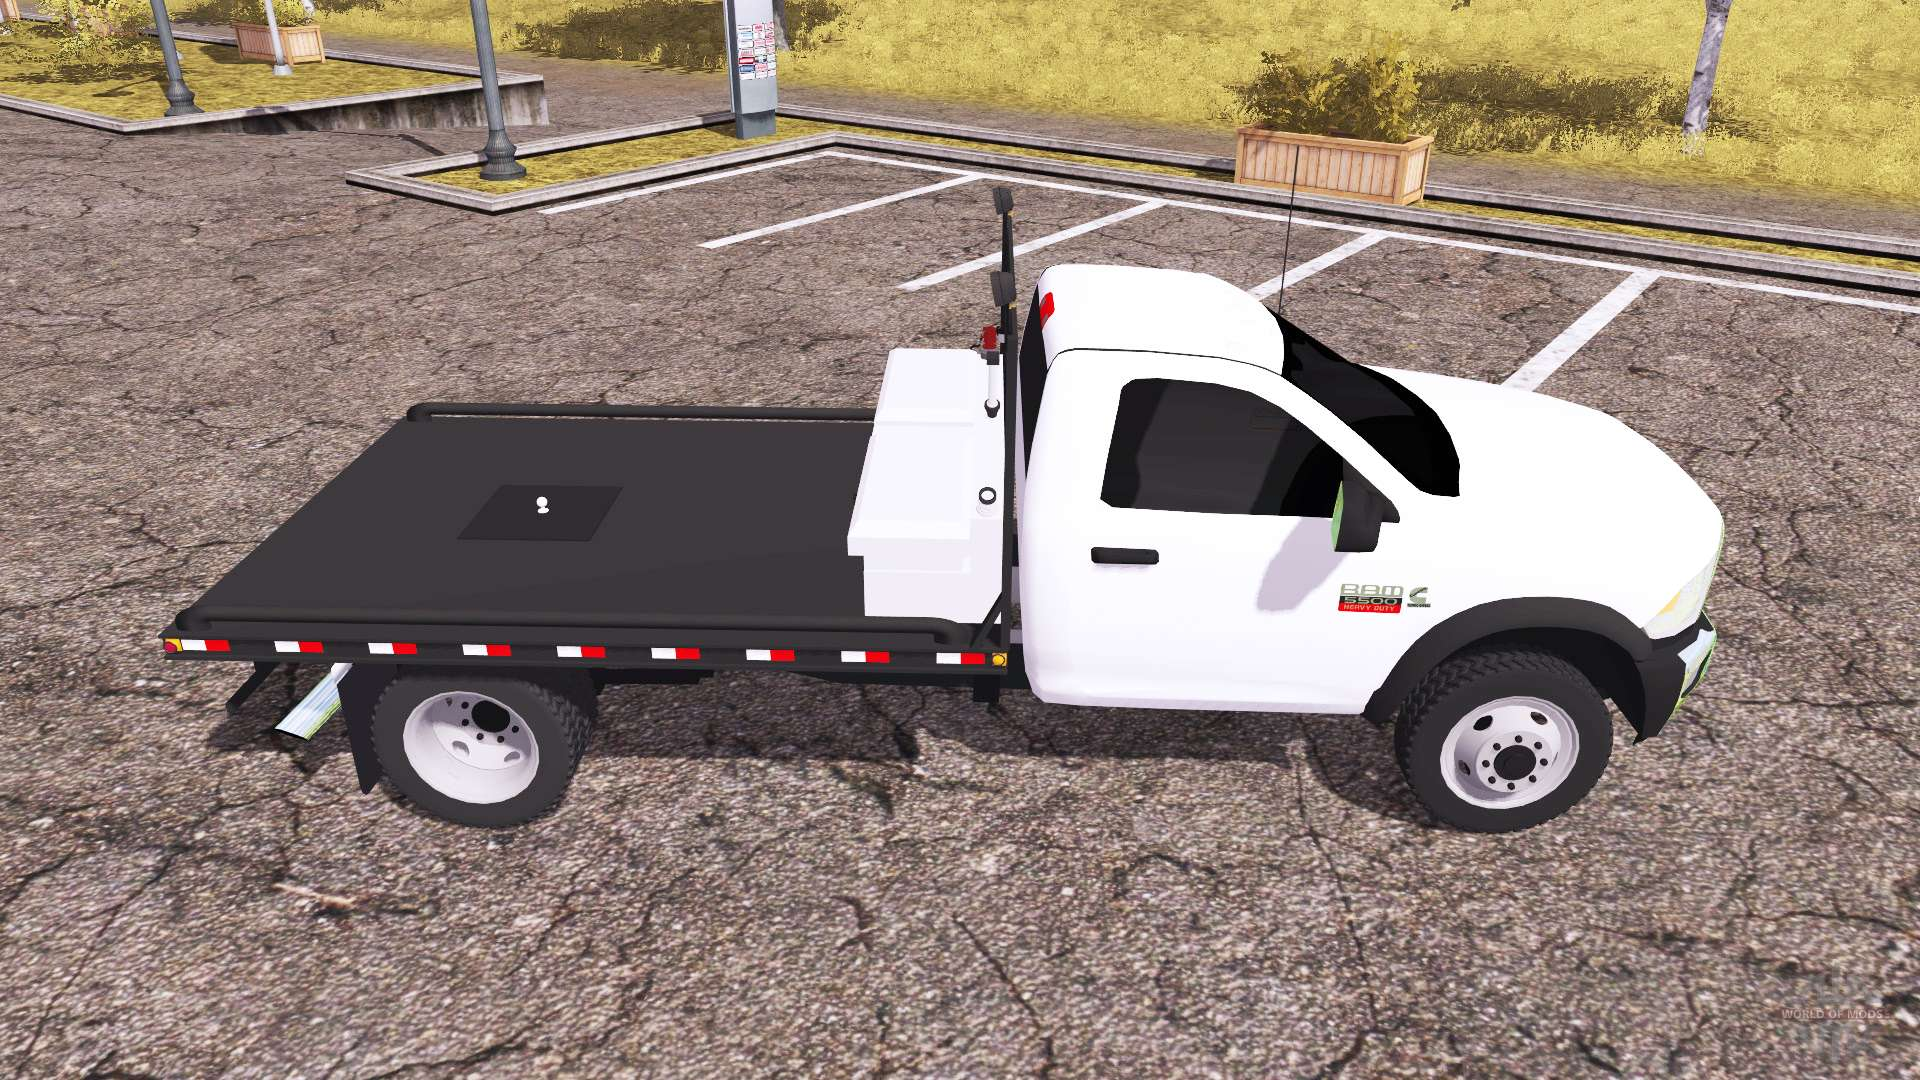 Dodge ram 5500 heavy duty flatbead para farming simulator 2013 for 5500 3